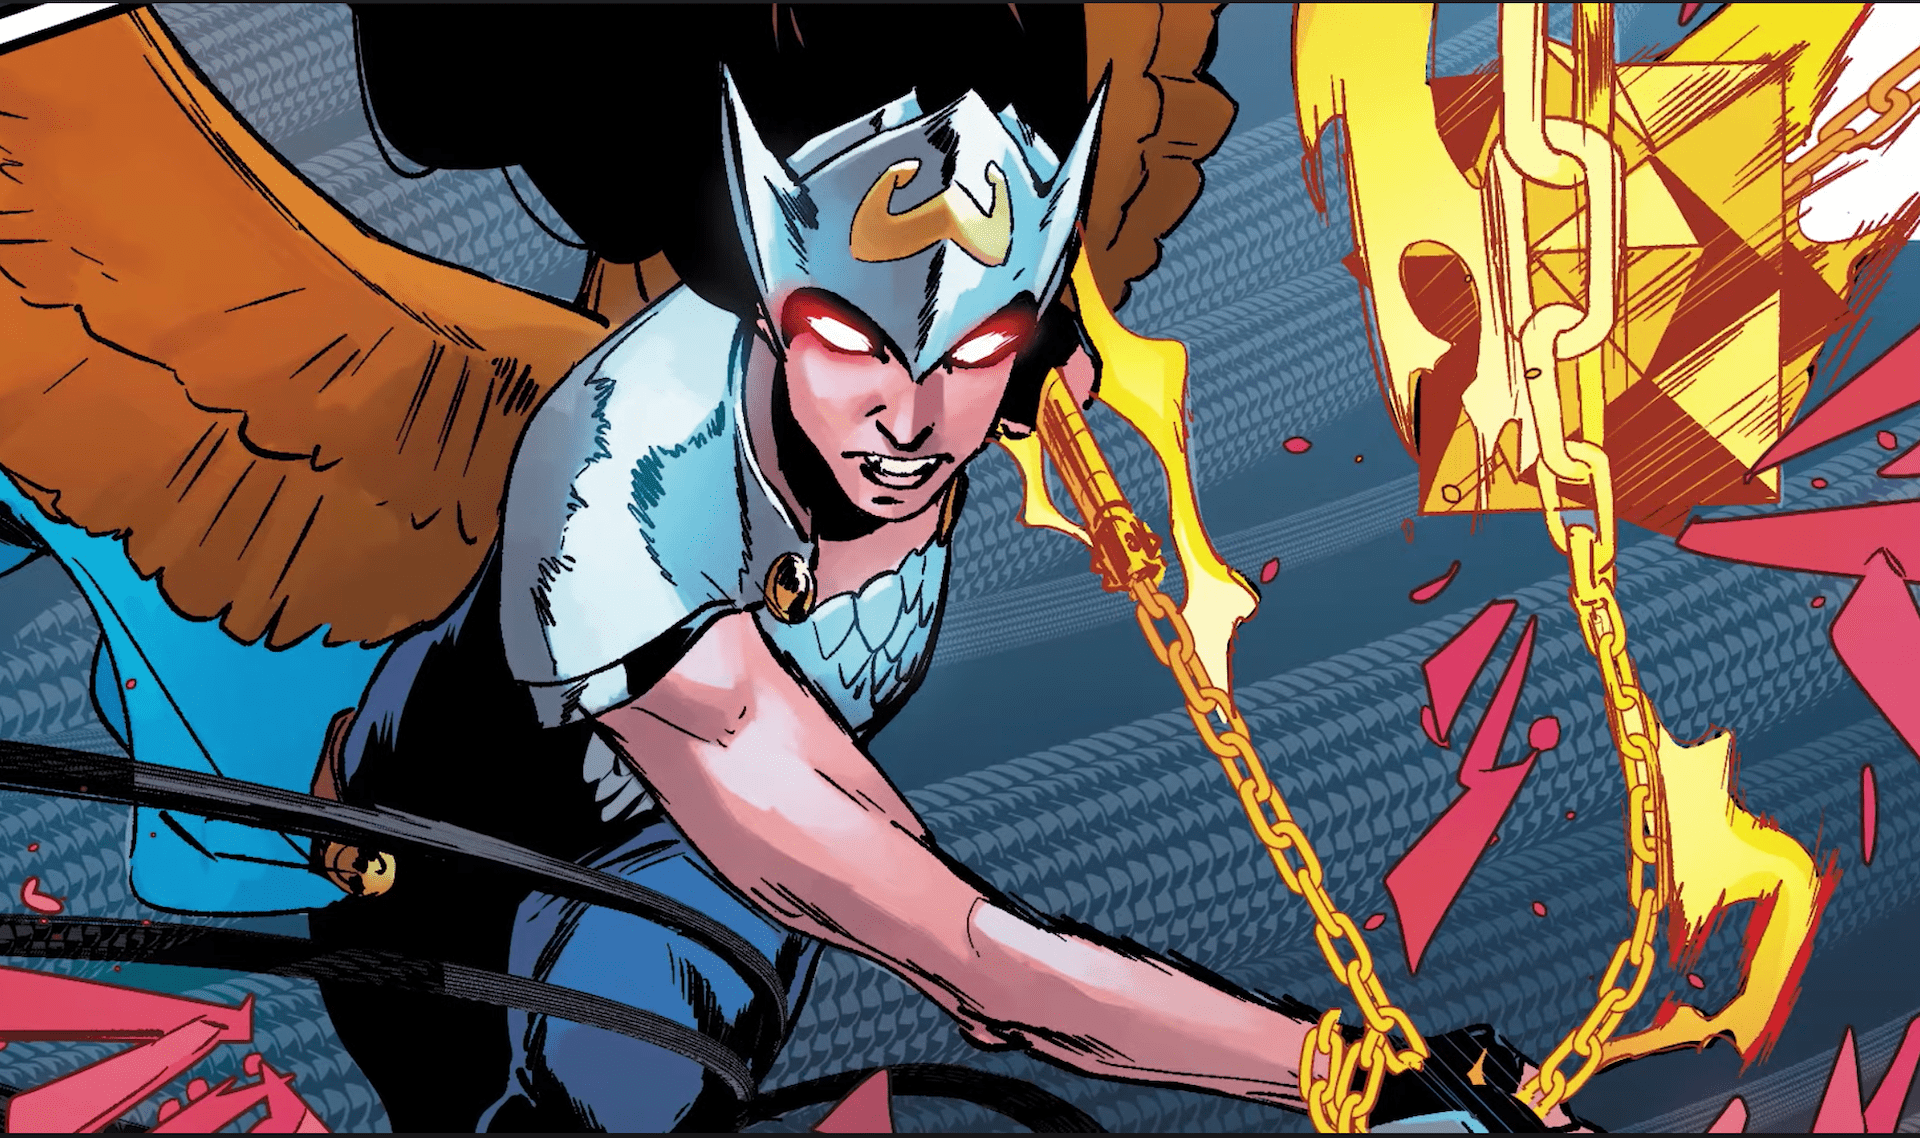 Marvel Comics launches 'King in Black: Return of the Valkyries' trailer